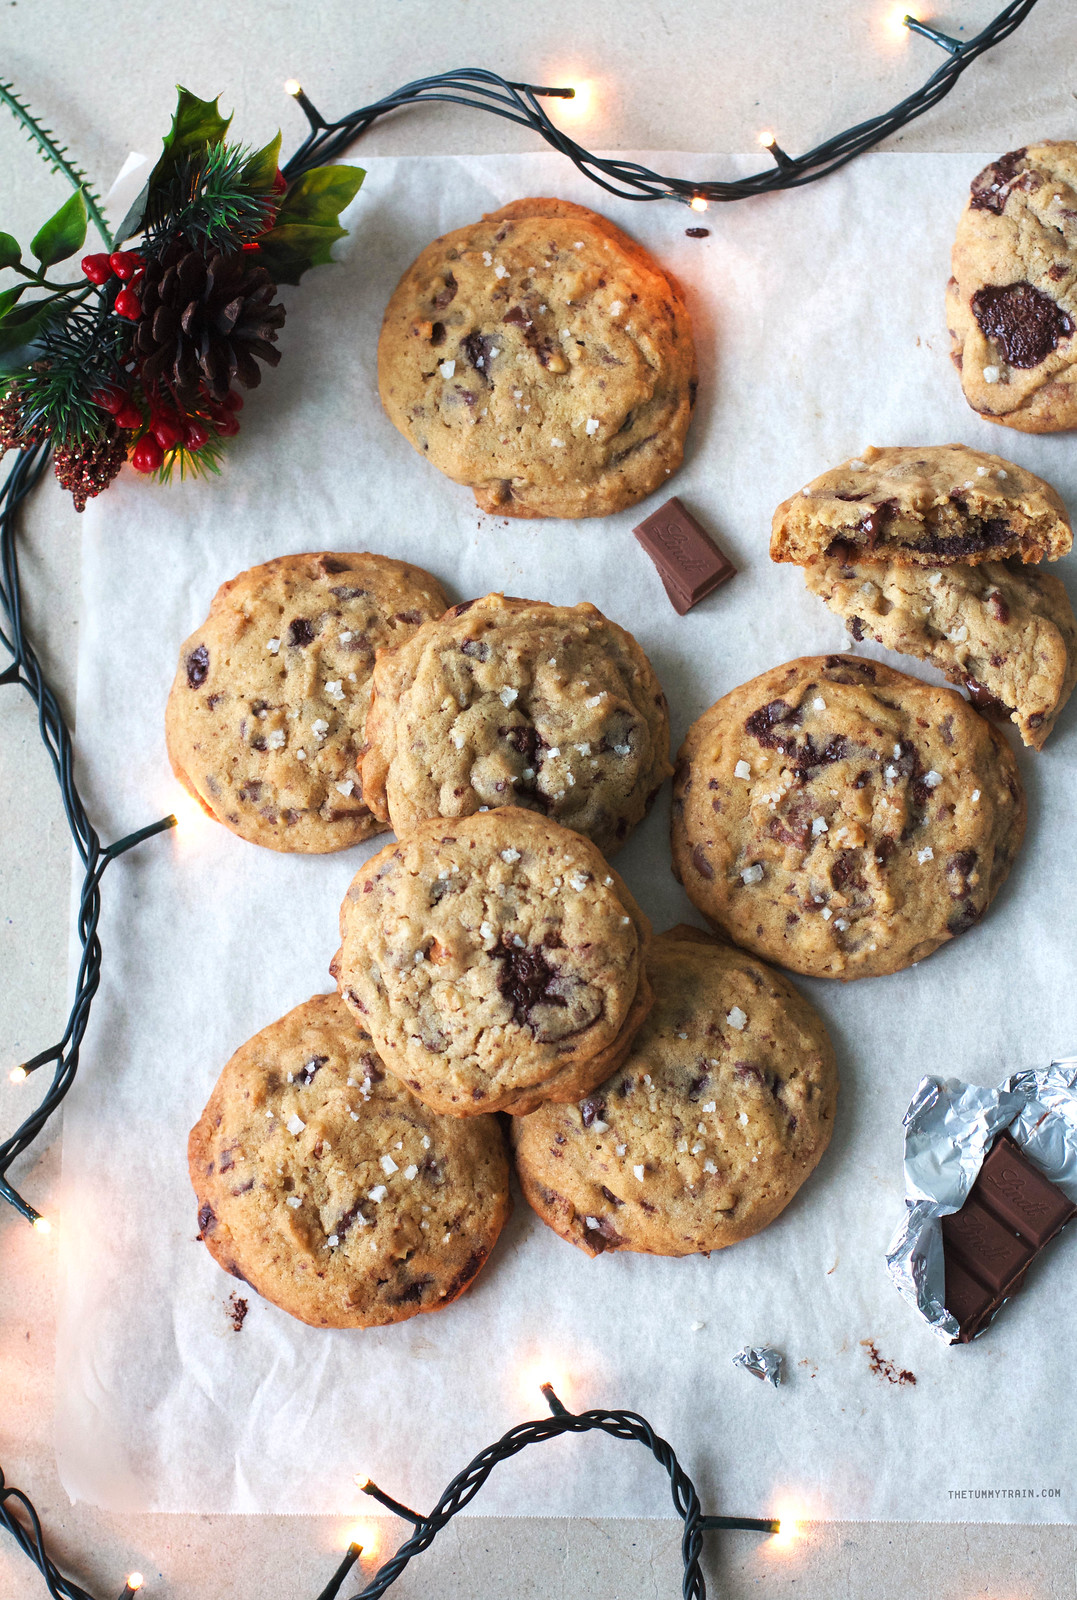 31048100884 f843cd2e33 h - A bit of holiday indulgence with these Triple Chocolate Chunk Cookies